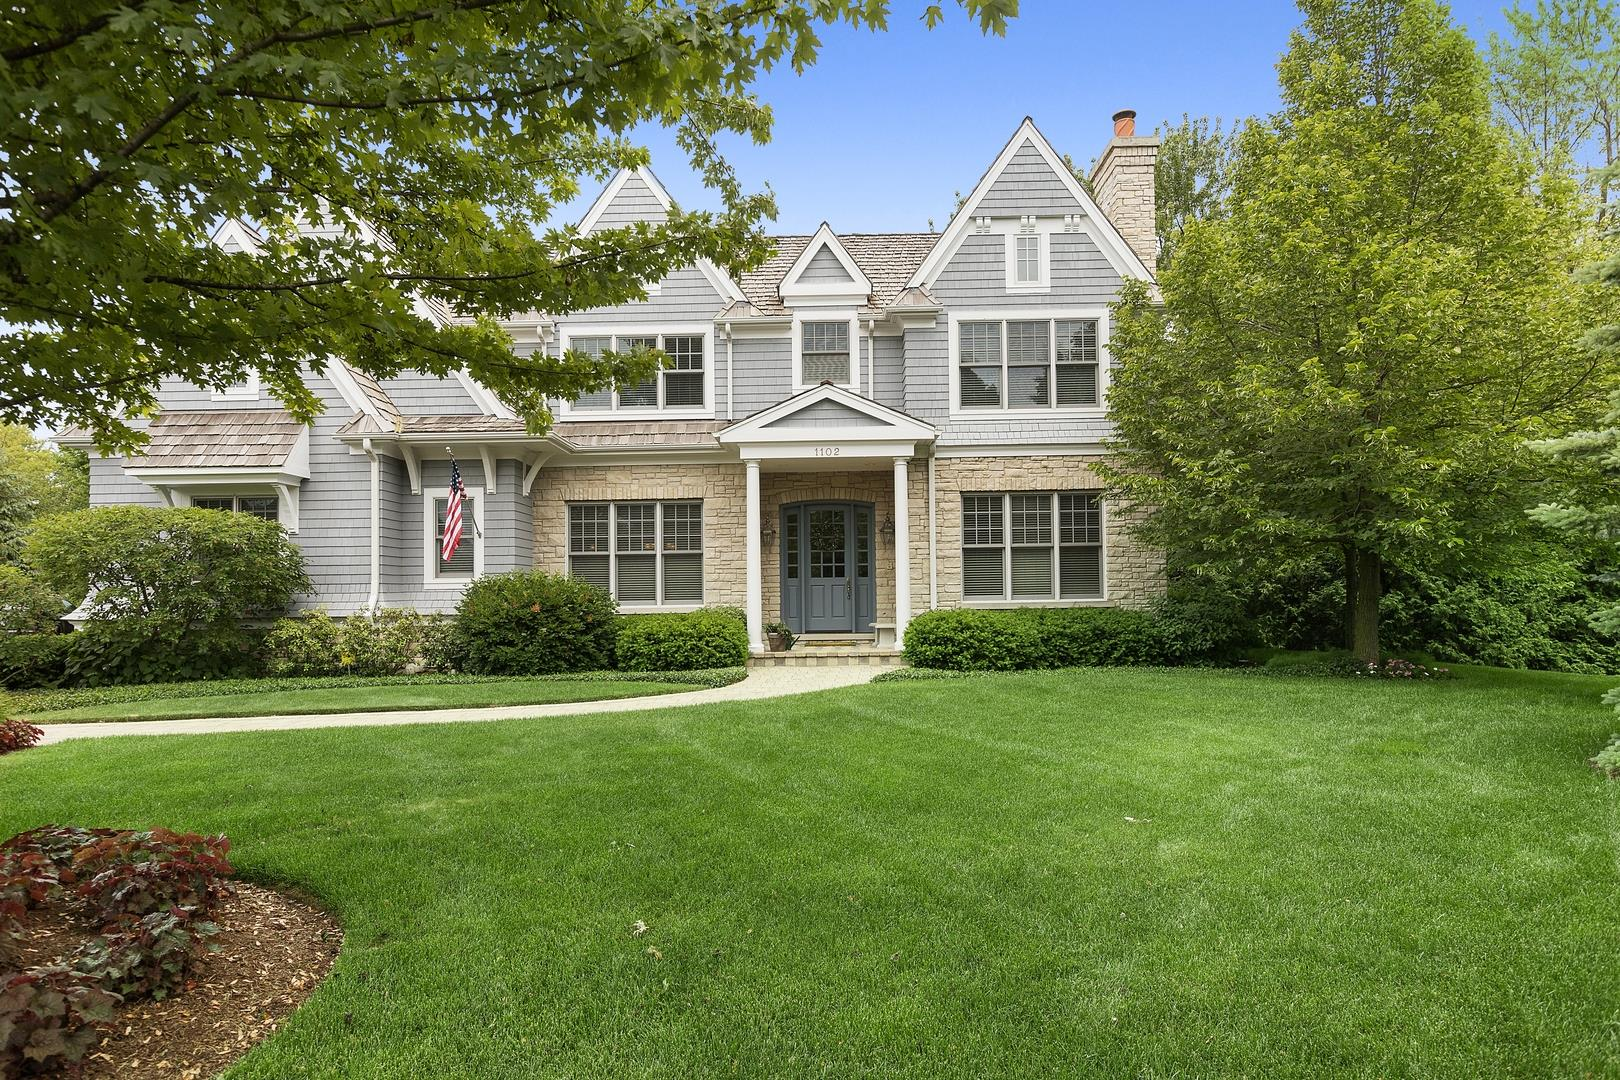 1102 Emmons Court, Lake Forest, IL 60045 - #: 10880051